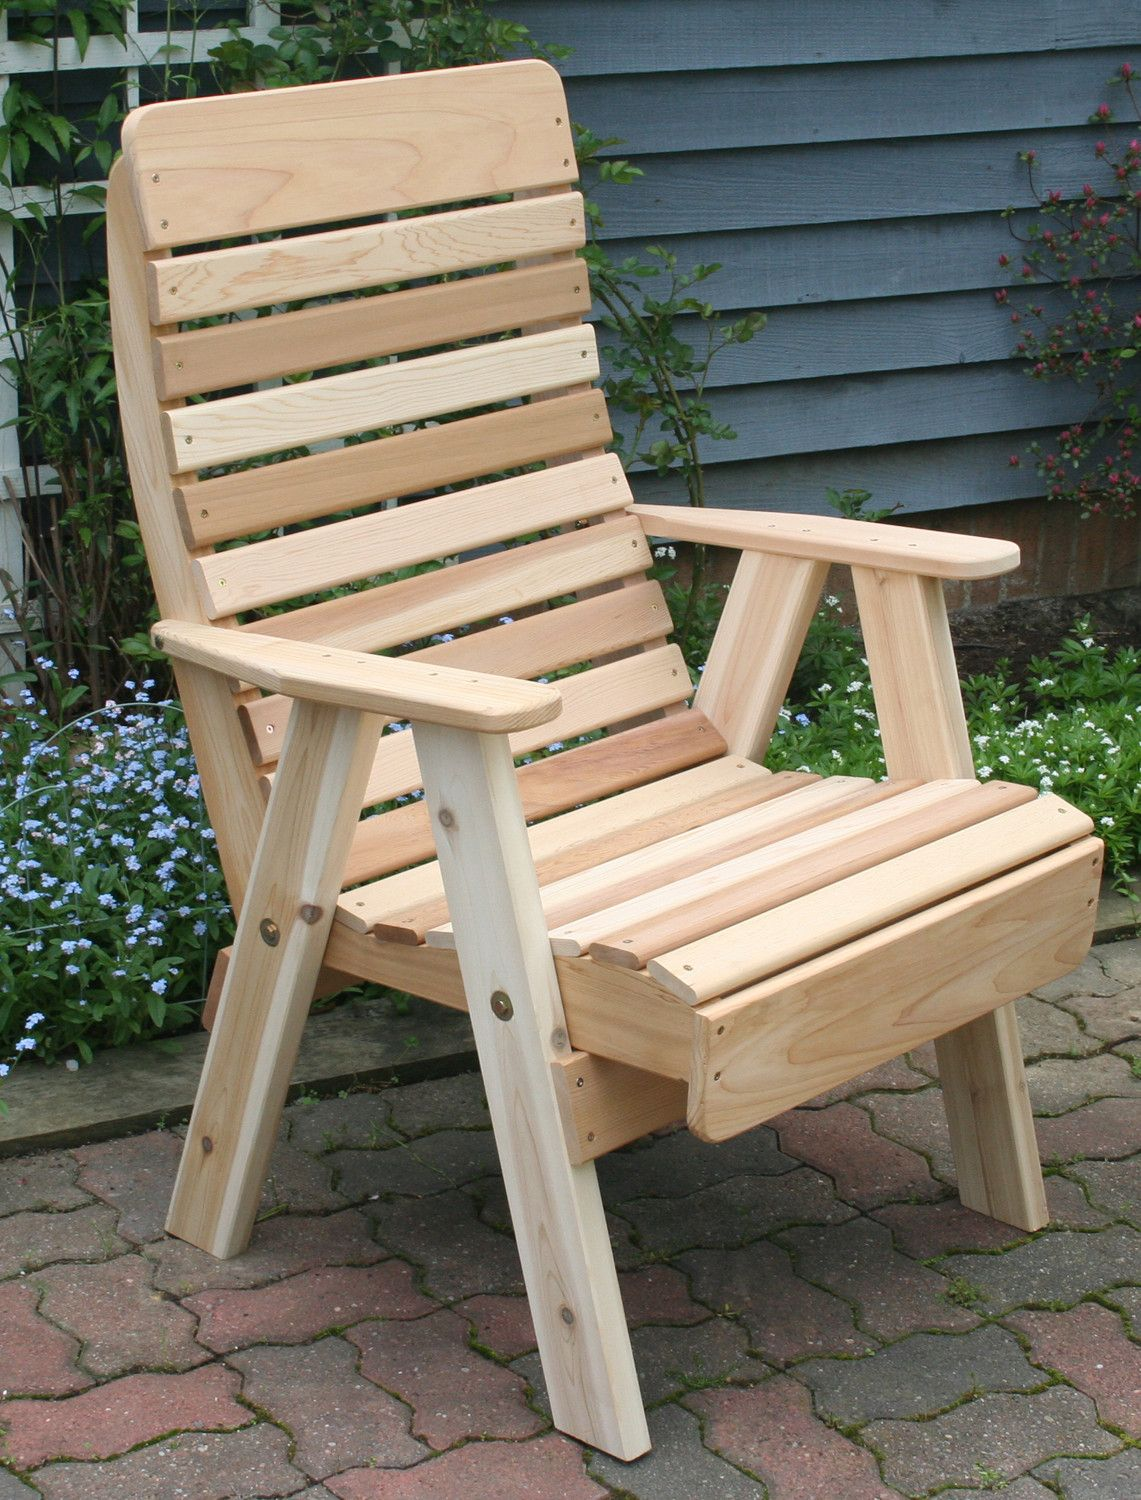 High Back Chair Patio Furniture Game Tables And Chairs Creekvine Designs Cedar Highback Crafts Pinterest